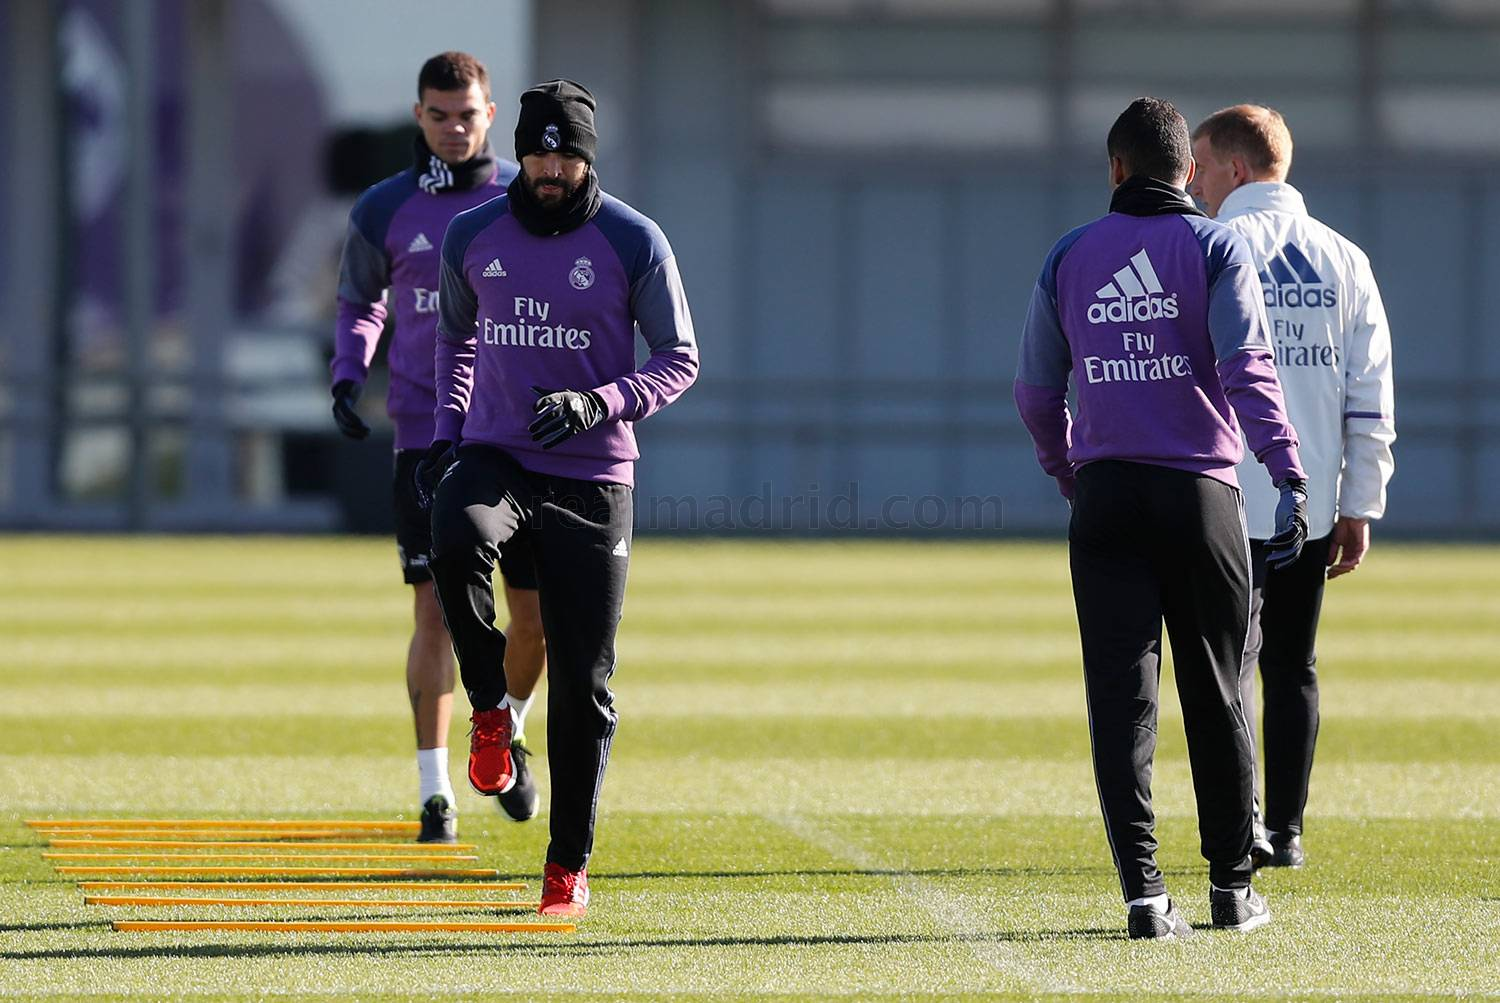 Real Madrid - Entrenamiento del Real Madrid - 10-11-2016